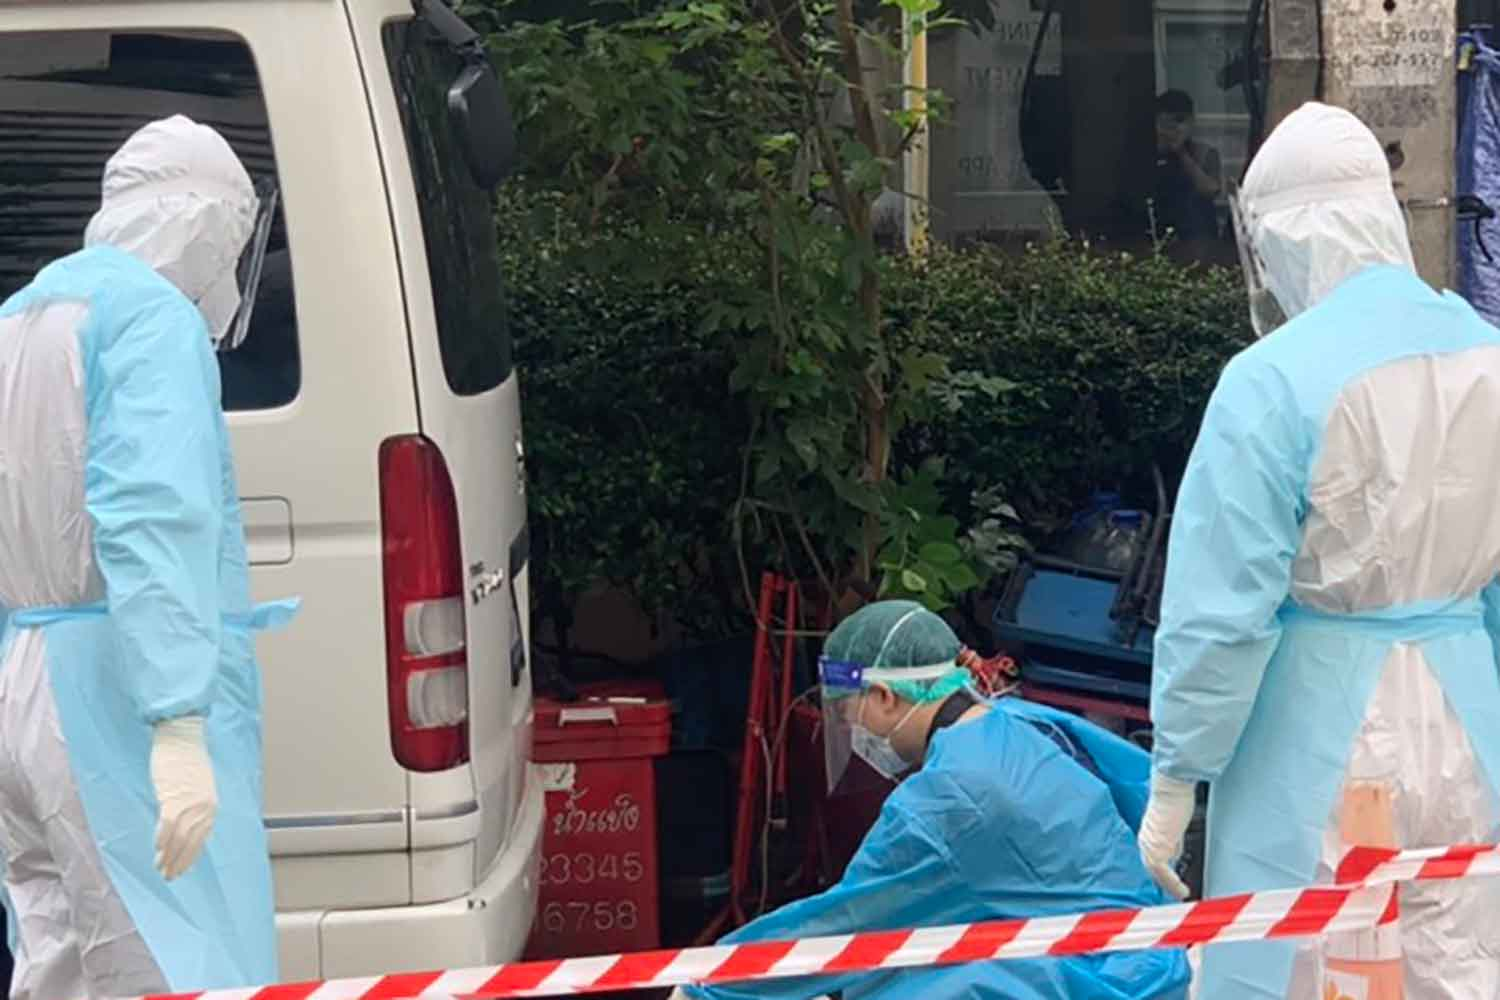 Medical workers in protective suits examine the body of a man found dead on Soi Sukhumvit 20 in Watthana district, Bangkok, on Thursday morning. (Photo supplied)